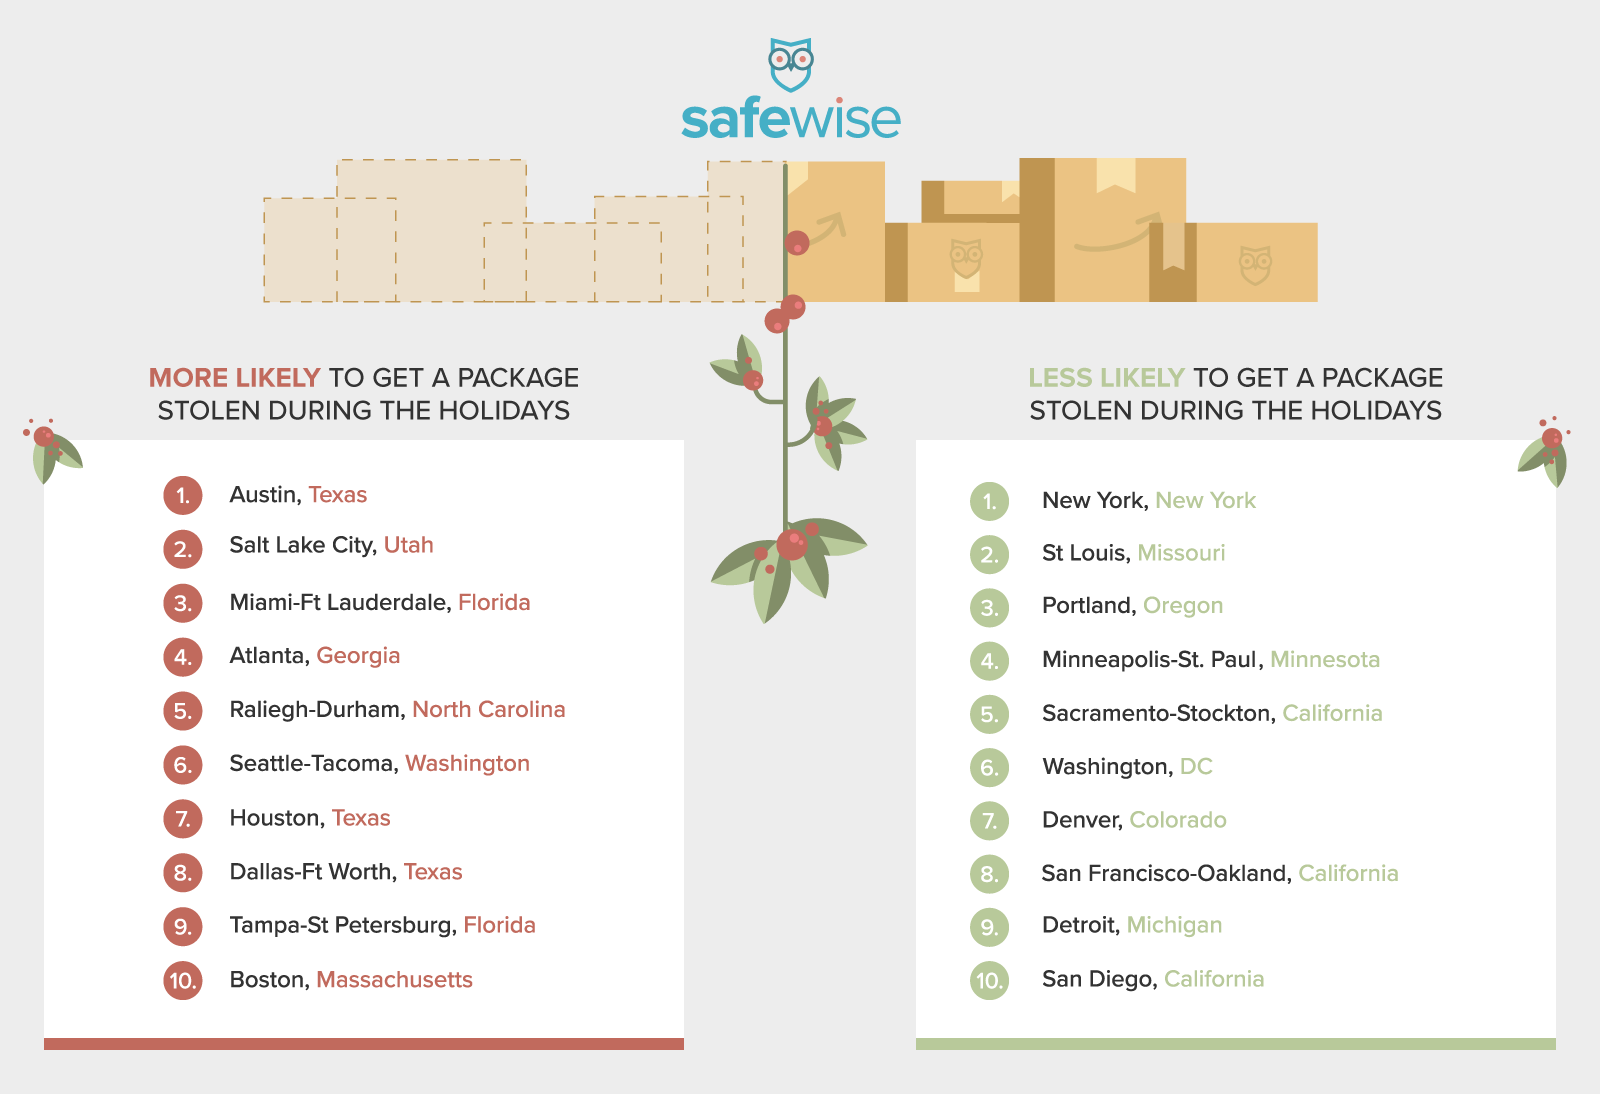 SafeWise Porch Theft Metro Areas Infographic